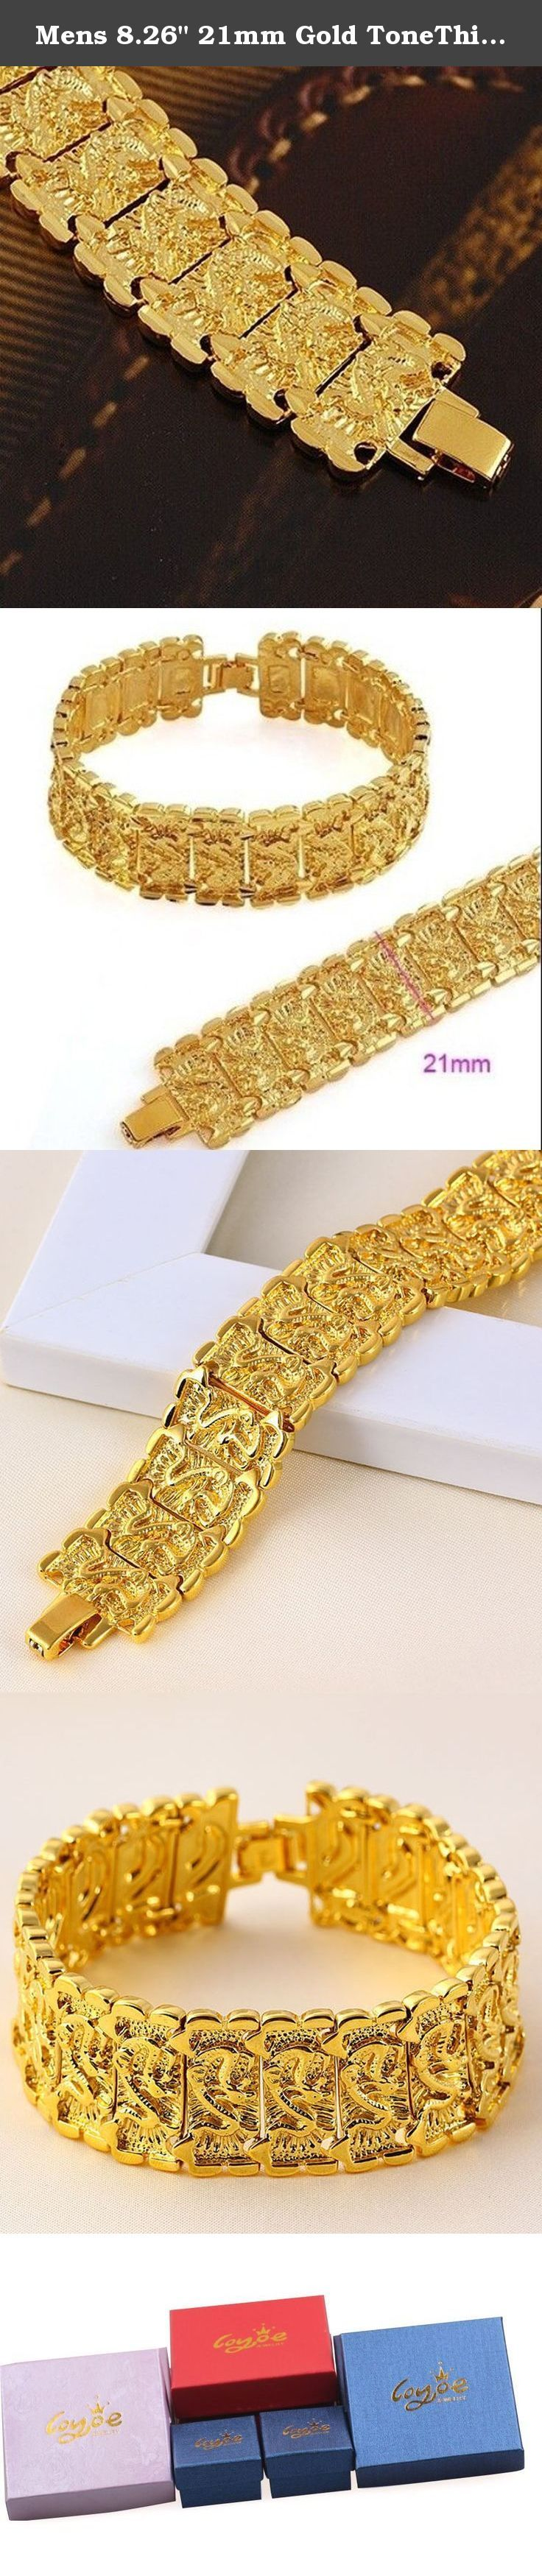 """Mens 8.26"""" 21mm Gold ToneThick Nugget Link Bracelet Dragon Pattern. 24k yellow gold plated mens womens link bracelet length:210mmX21mm weight:41grams What is Gold Plating? Gold plated items have a layer of real gold deposited over another metal. Our jewelry items have gold plated over brass, which gives them a weight that is very similar to real gold jewelry. Do Gold Plated Items Turn? It depends on the quality of the plating. Some gold plated items have a very thin, weak plating that is..."""